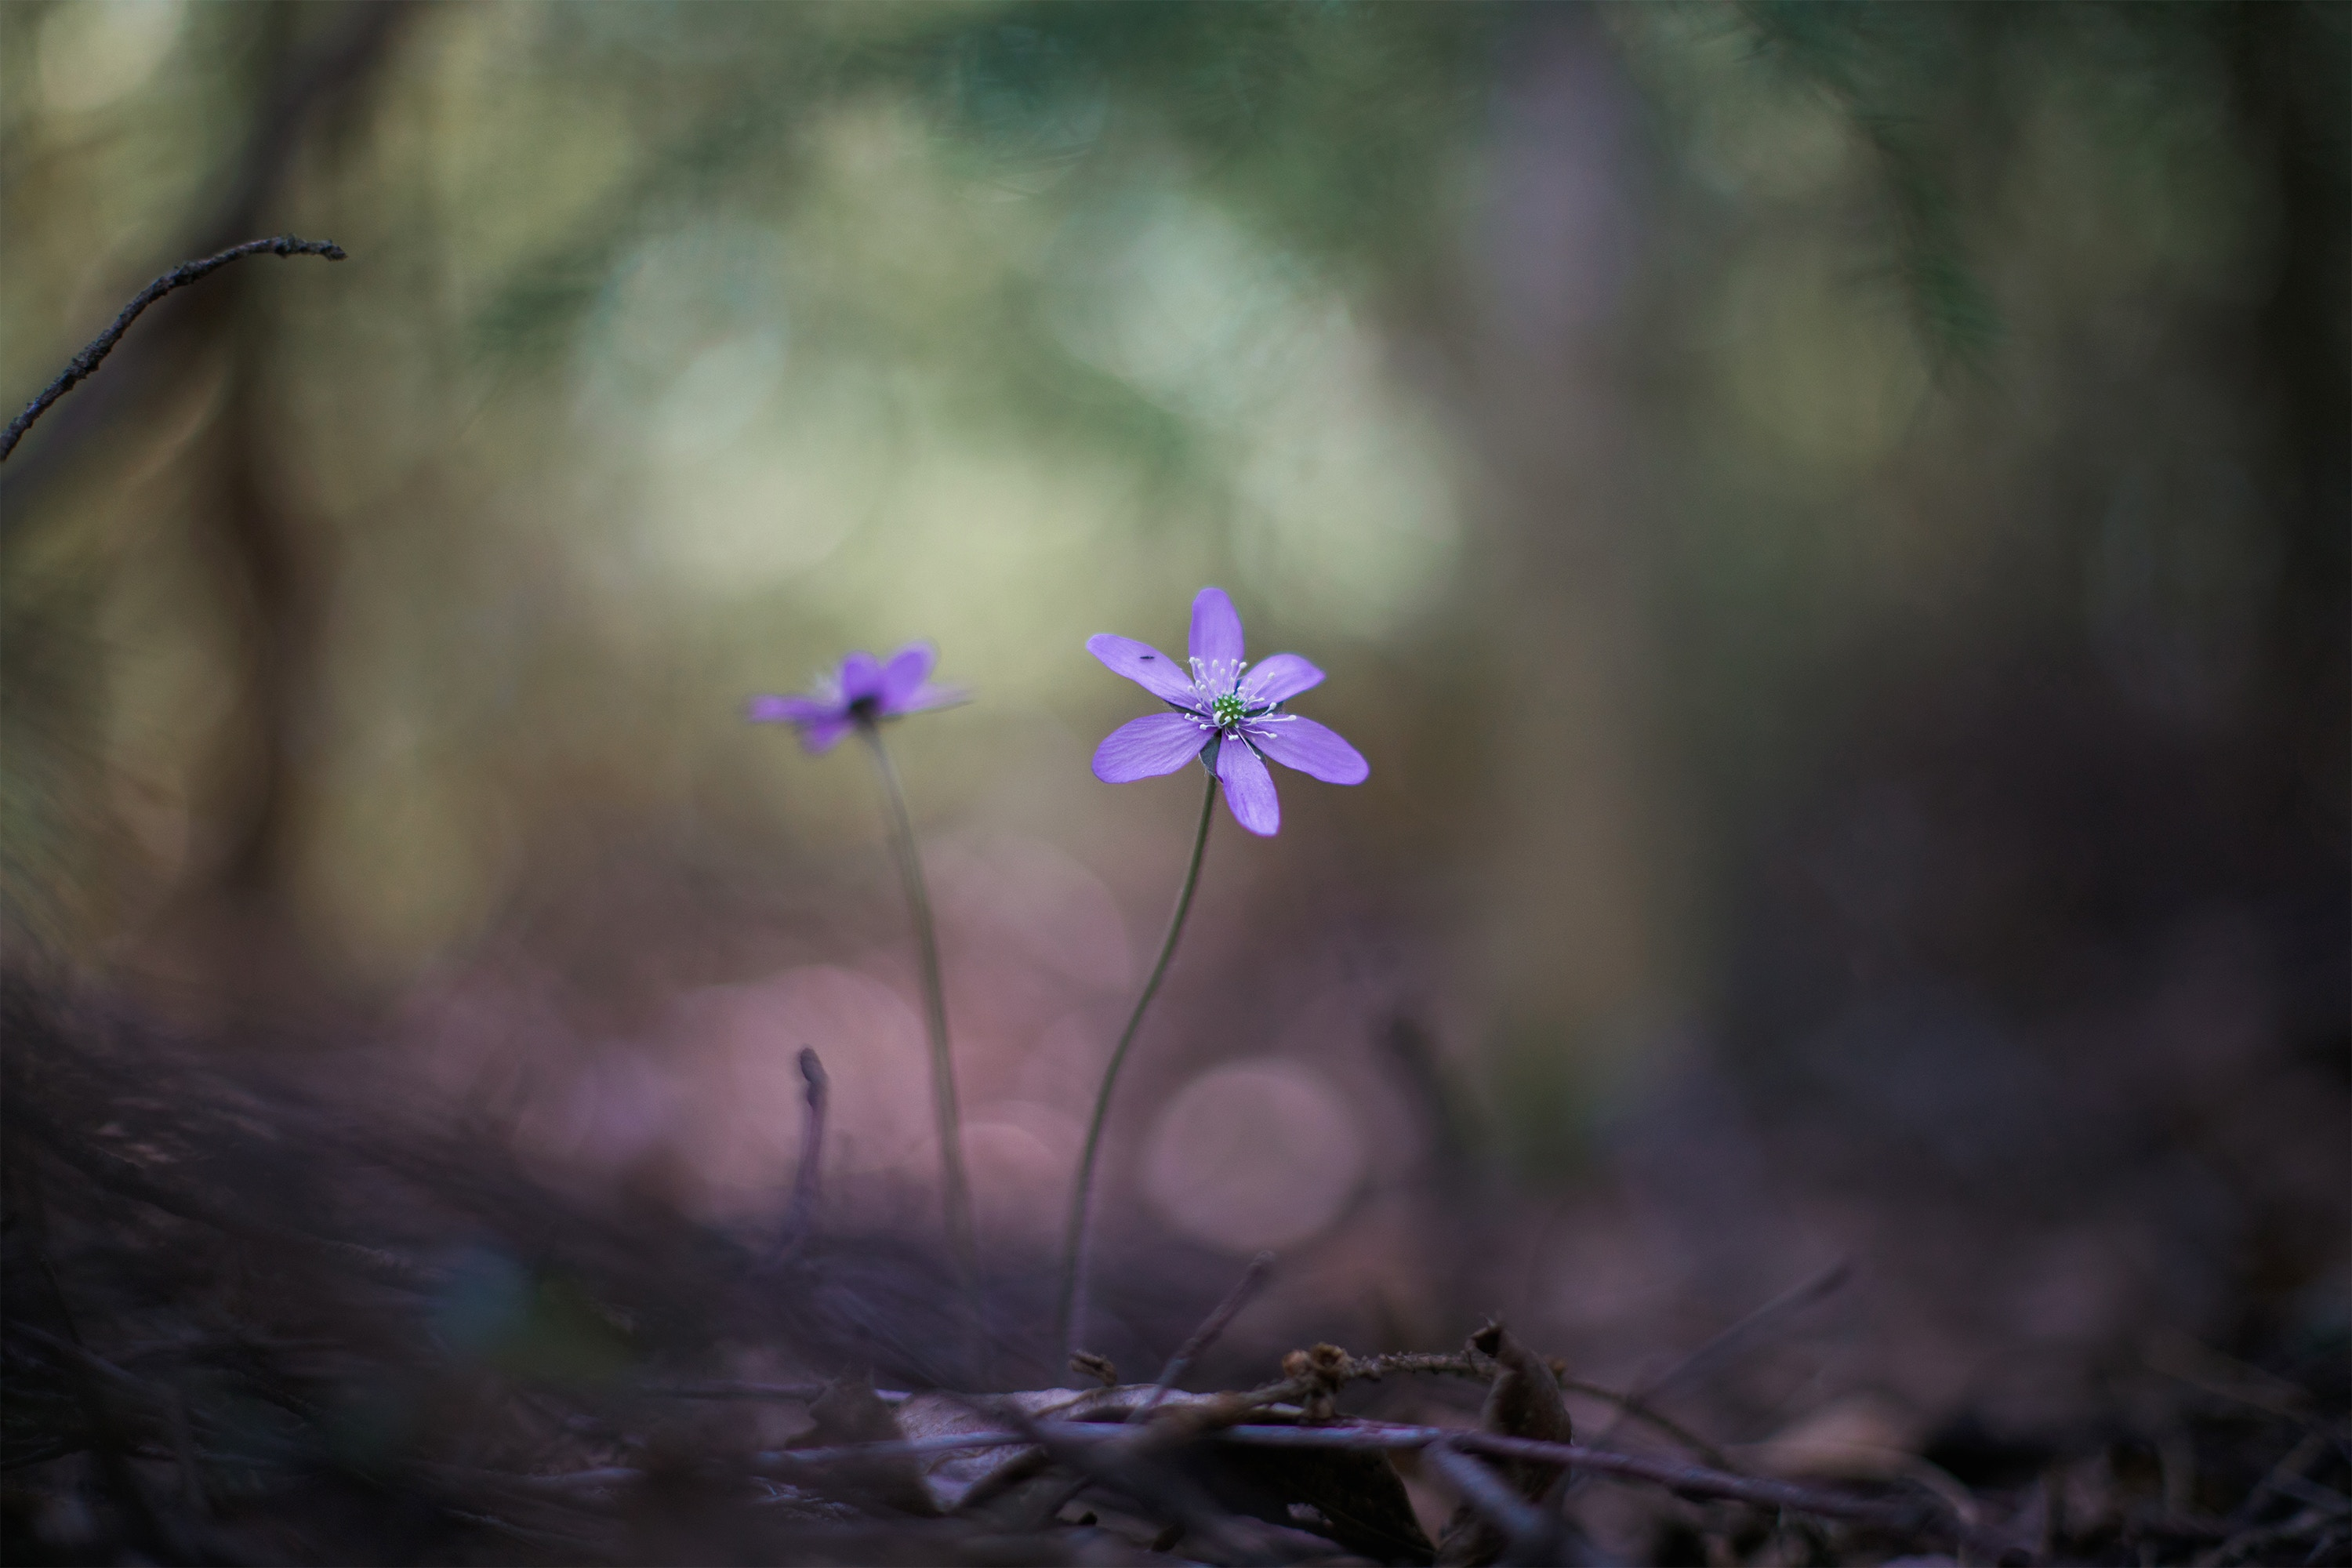 Purple flowers with barren woods in background